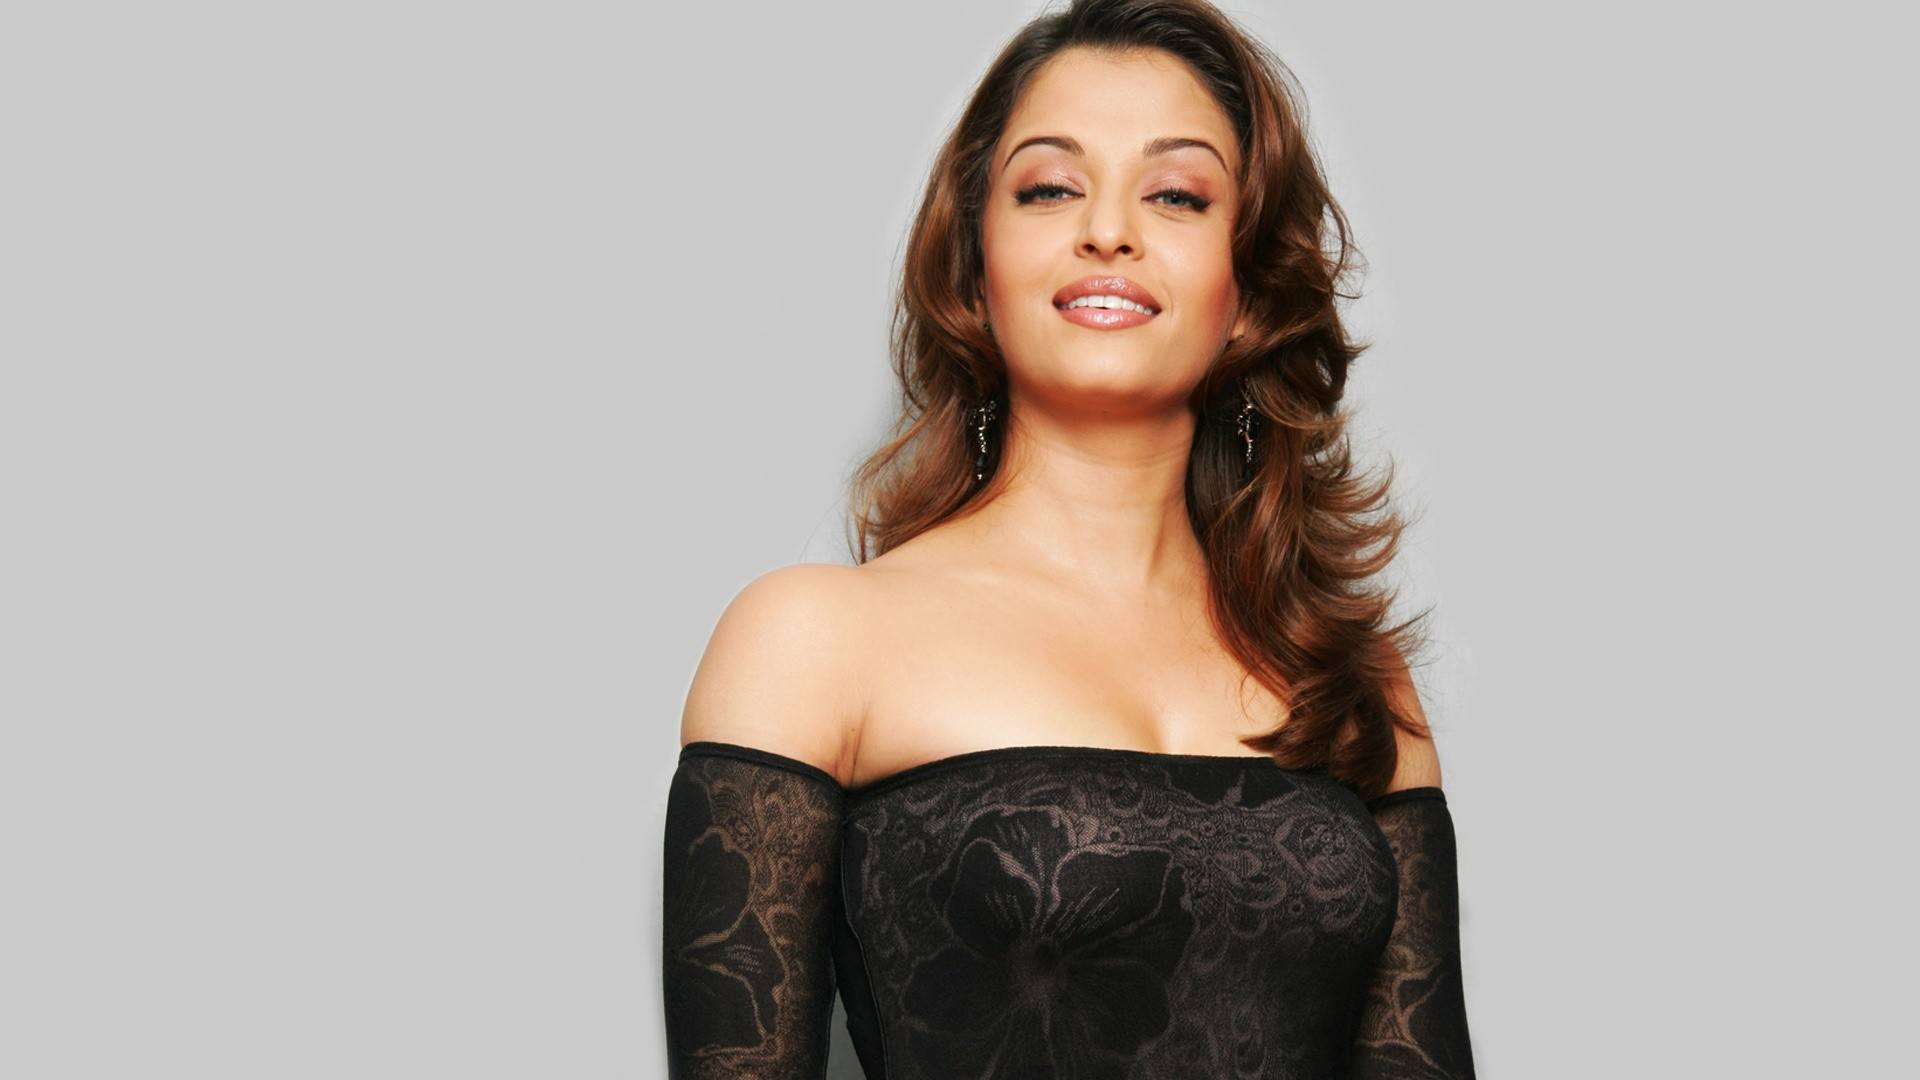 aishwarya_rai-wallpaper_2147483656